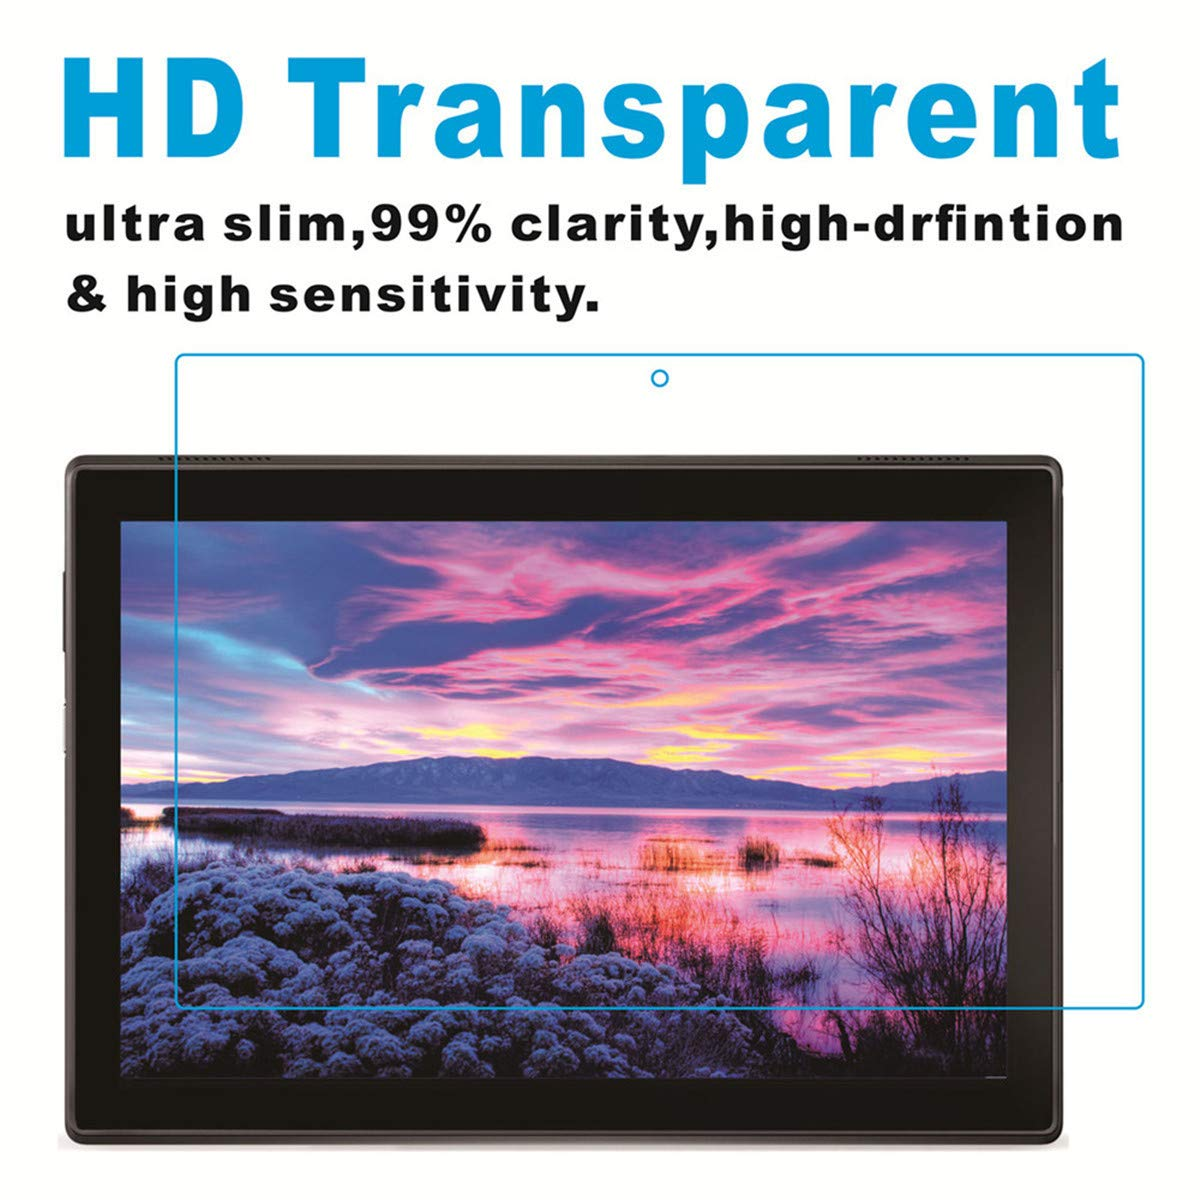 KAPRNA Screen Protector for Samsung Galaxy Tab A 10.1 inch 2019 ,2-Pack High Definition Tempered Glass Film for Samsung Galaxy Tab A 10.1 2019 SM-T510//SM-T515 Tablet